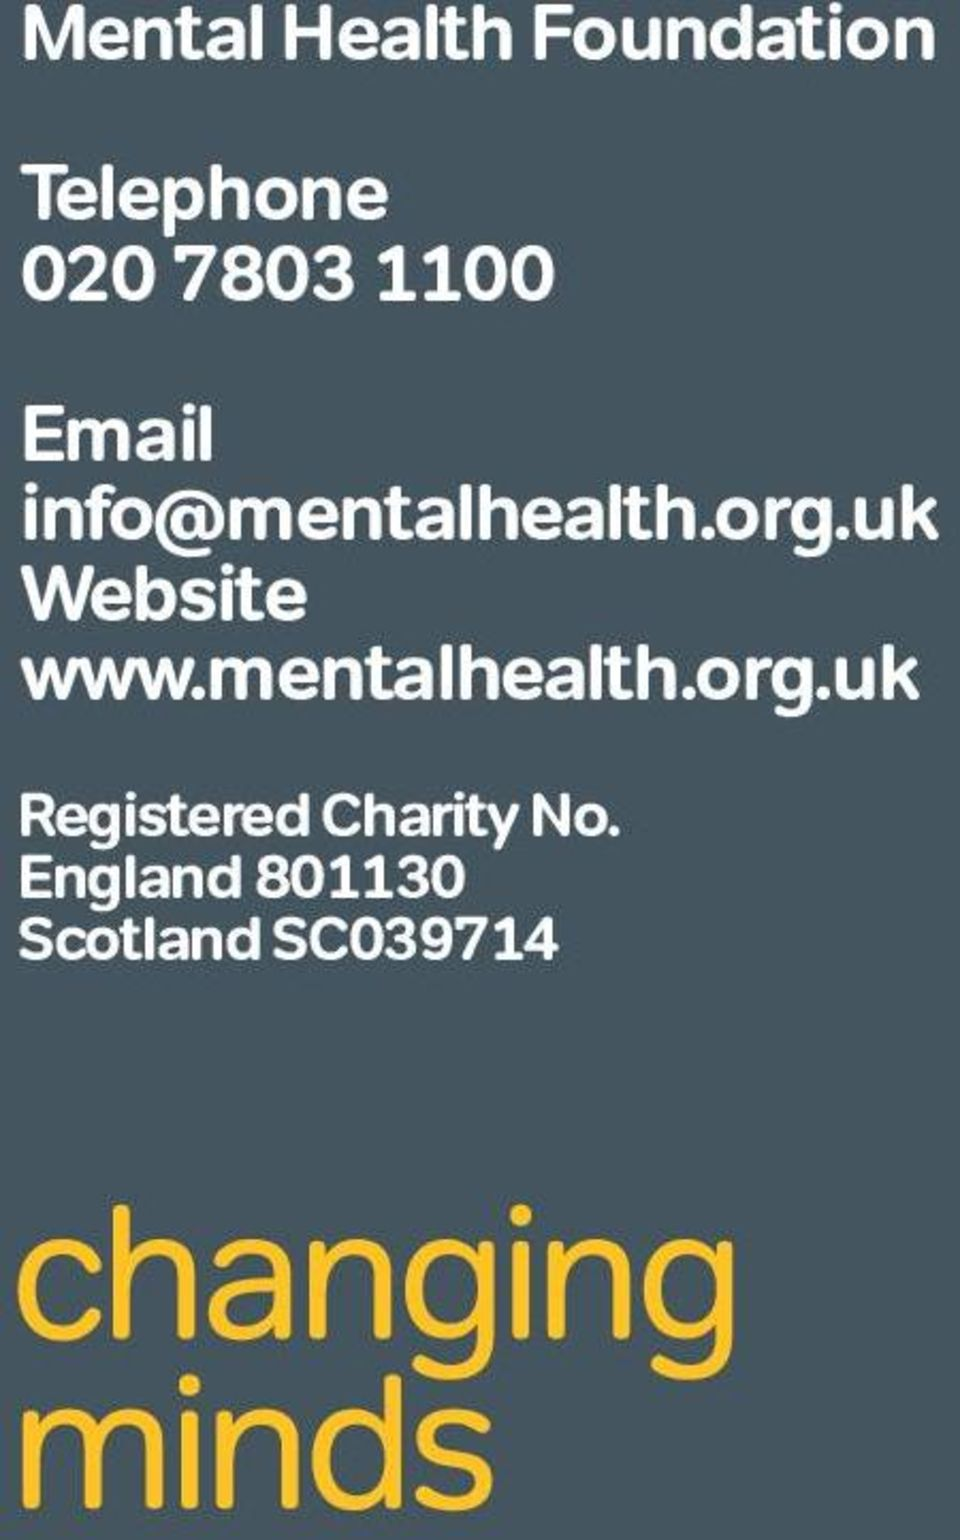 uk Website www.mentalhealth.org.